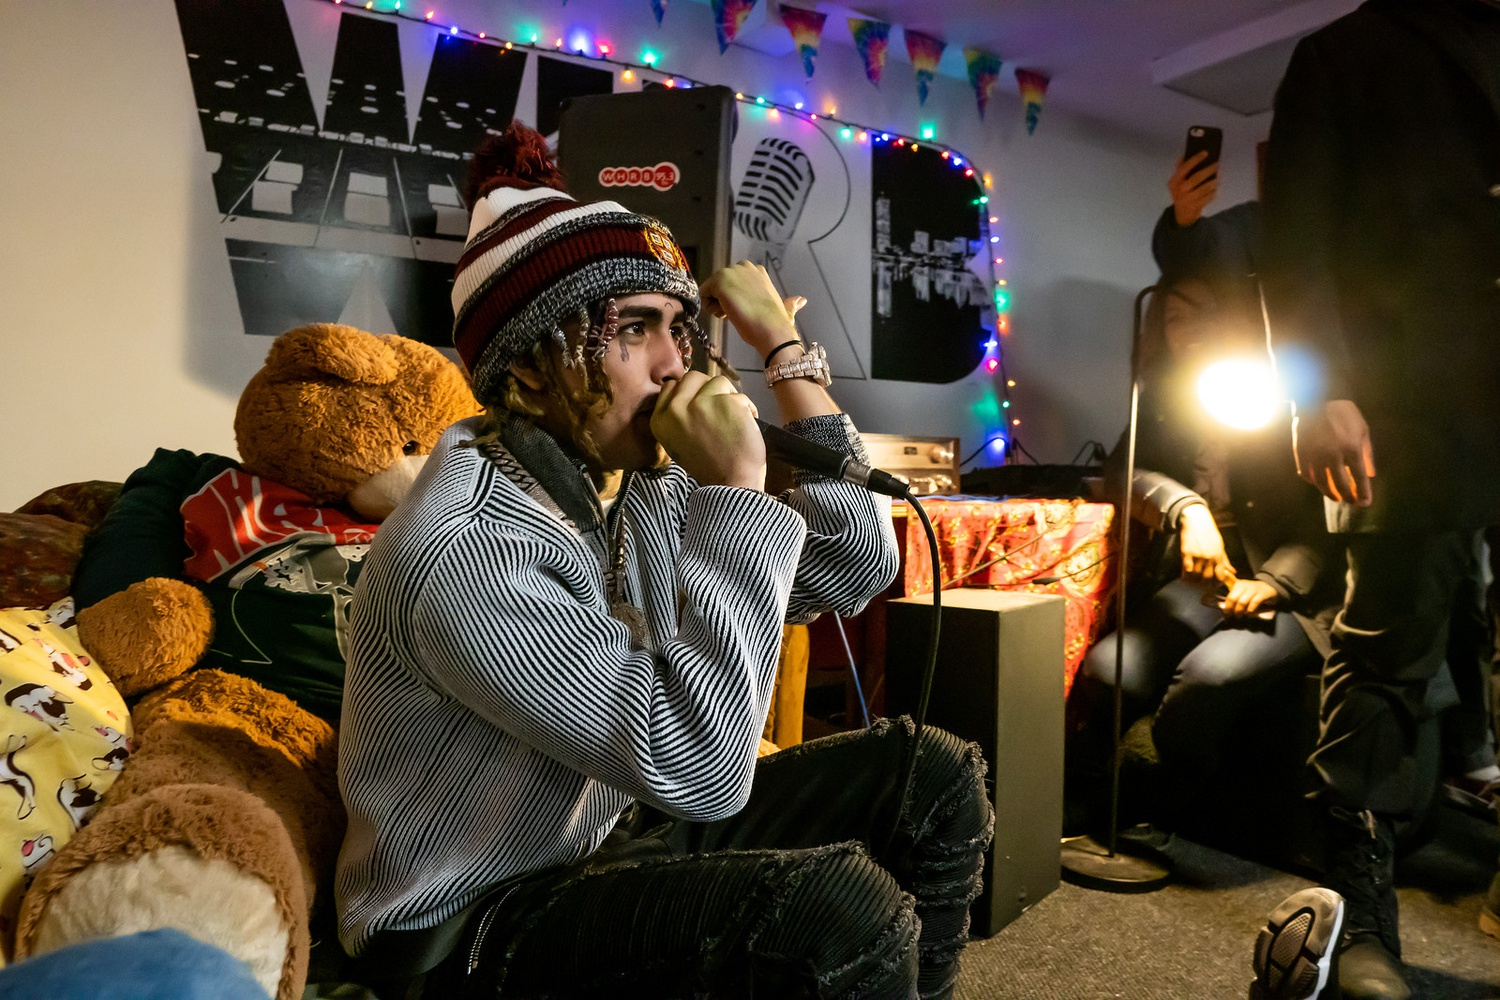 Harvard Radio Broadcasting — the student radio station commonly known as WHRB — invited rapper Lil Pump to their office earlier this month.